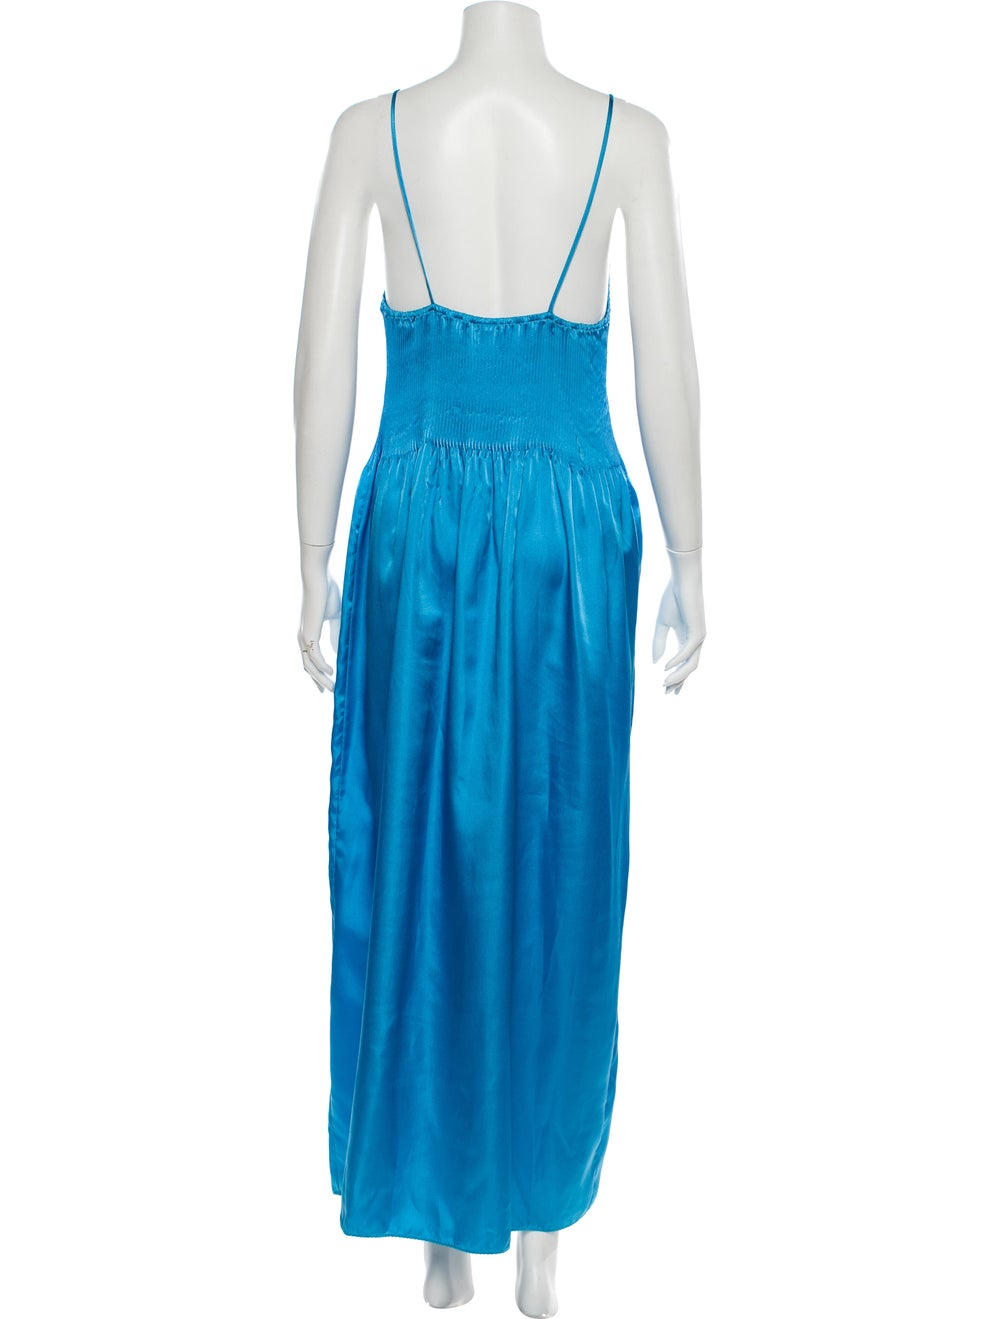 Mary McFadden Nightgown Blue - image 3